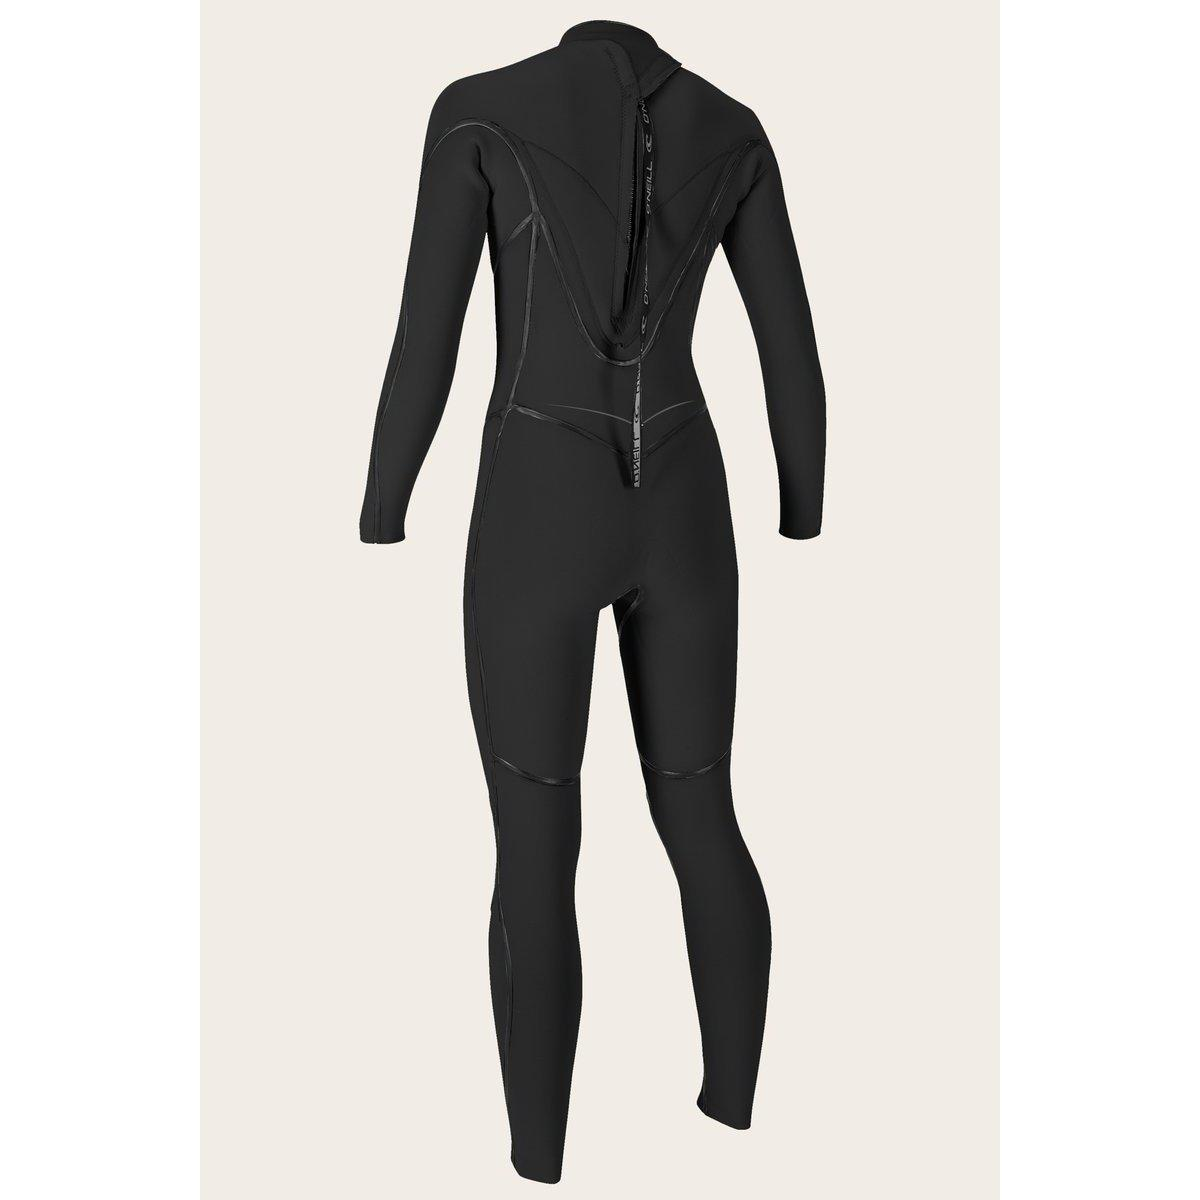 O'Neill Women's Psycho One 4/3 Back Zip Full Wetsuit-Big Winds